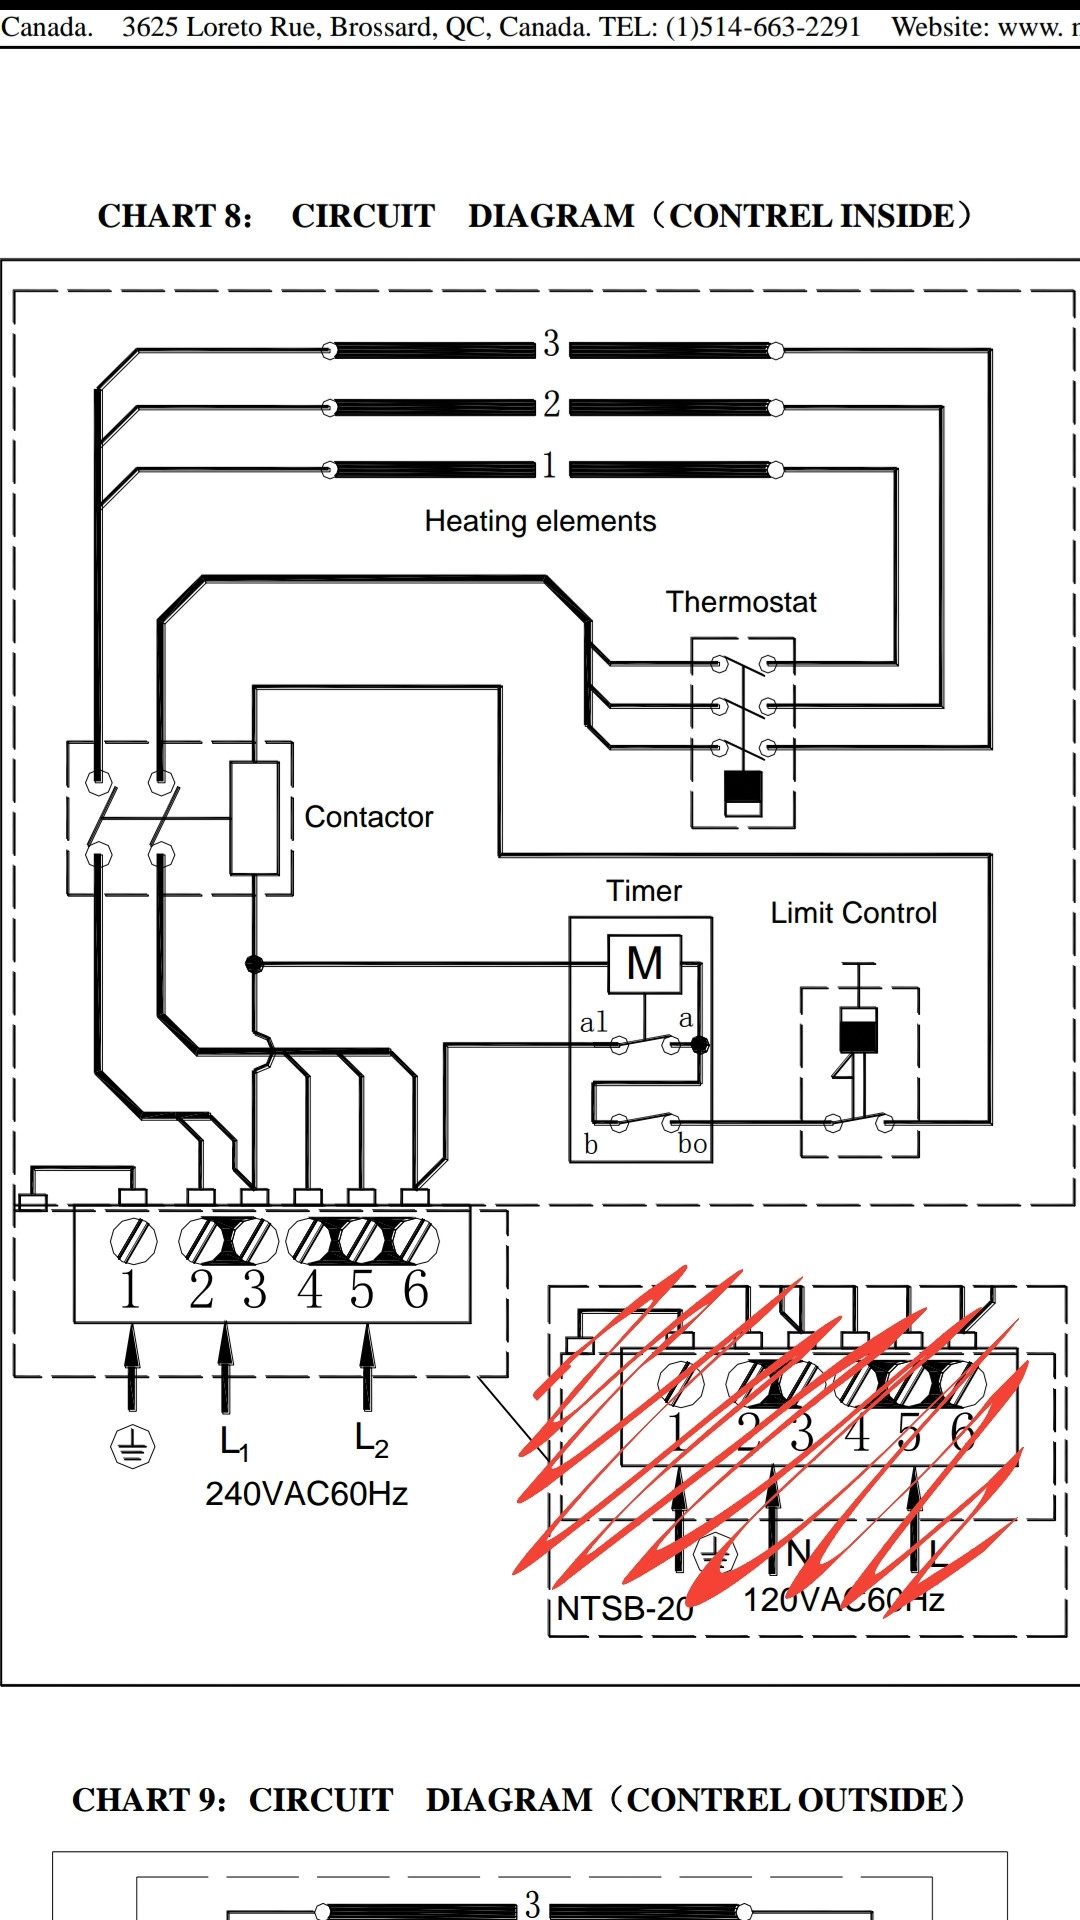 sauna heater wiring diagram Download-sauna heater wiring diagram sample wiring diagram sample rh faceitsalon Light Switch Wiring Diagram Schematic 13-j